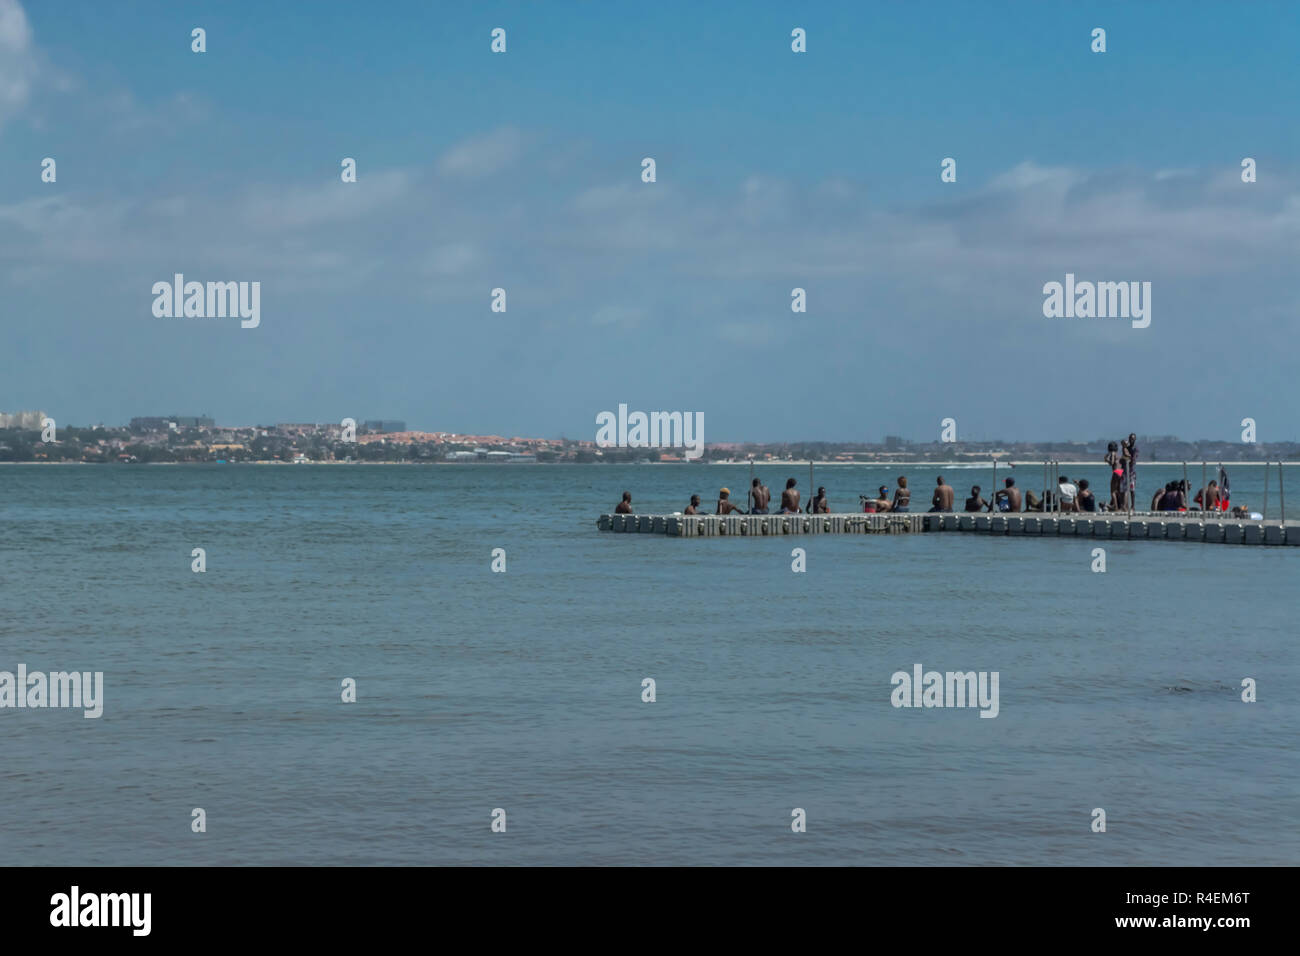 Luanda/Angola - 11 11 2018: View of small dock with people over, sea and jet boat, on the coast of Mussulo island, in Luanda, Angola - Stock Image